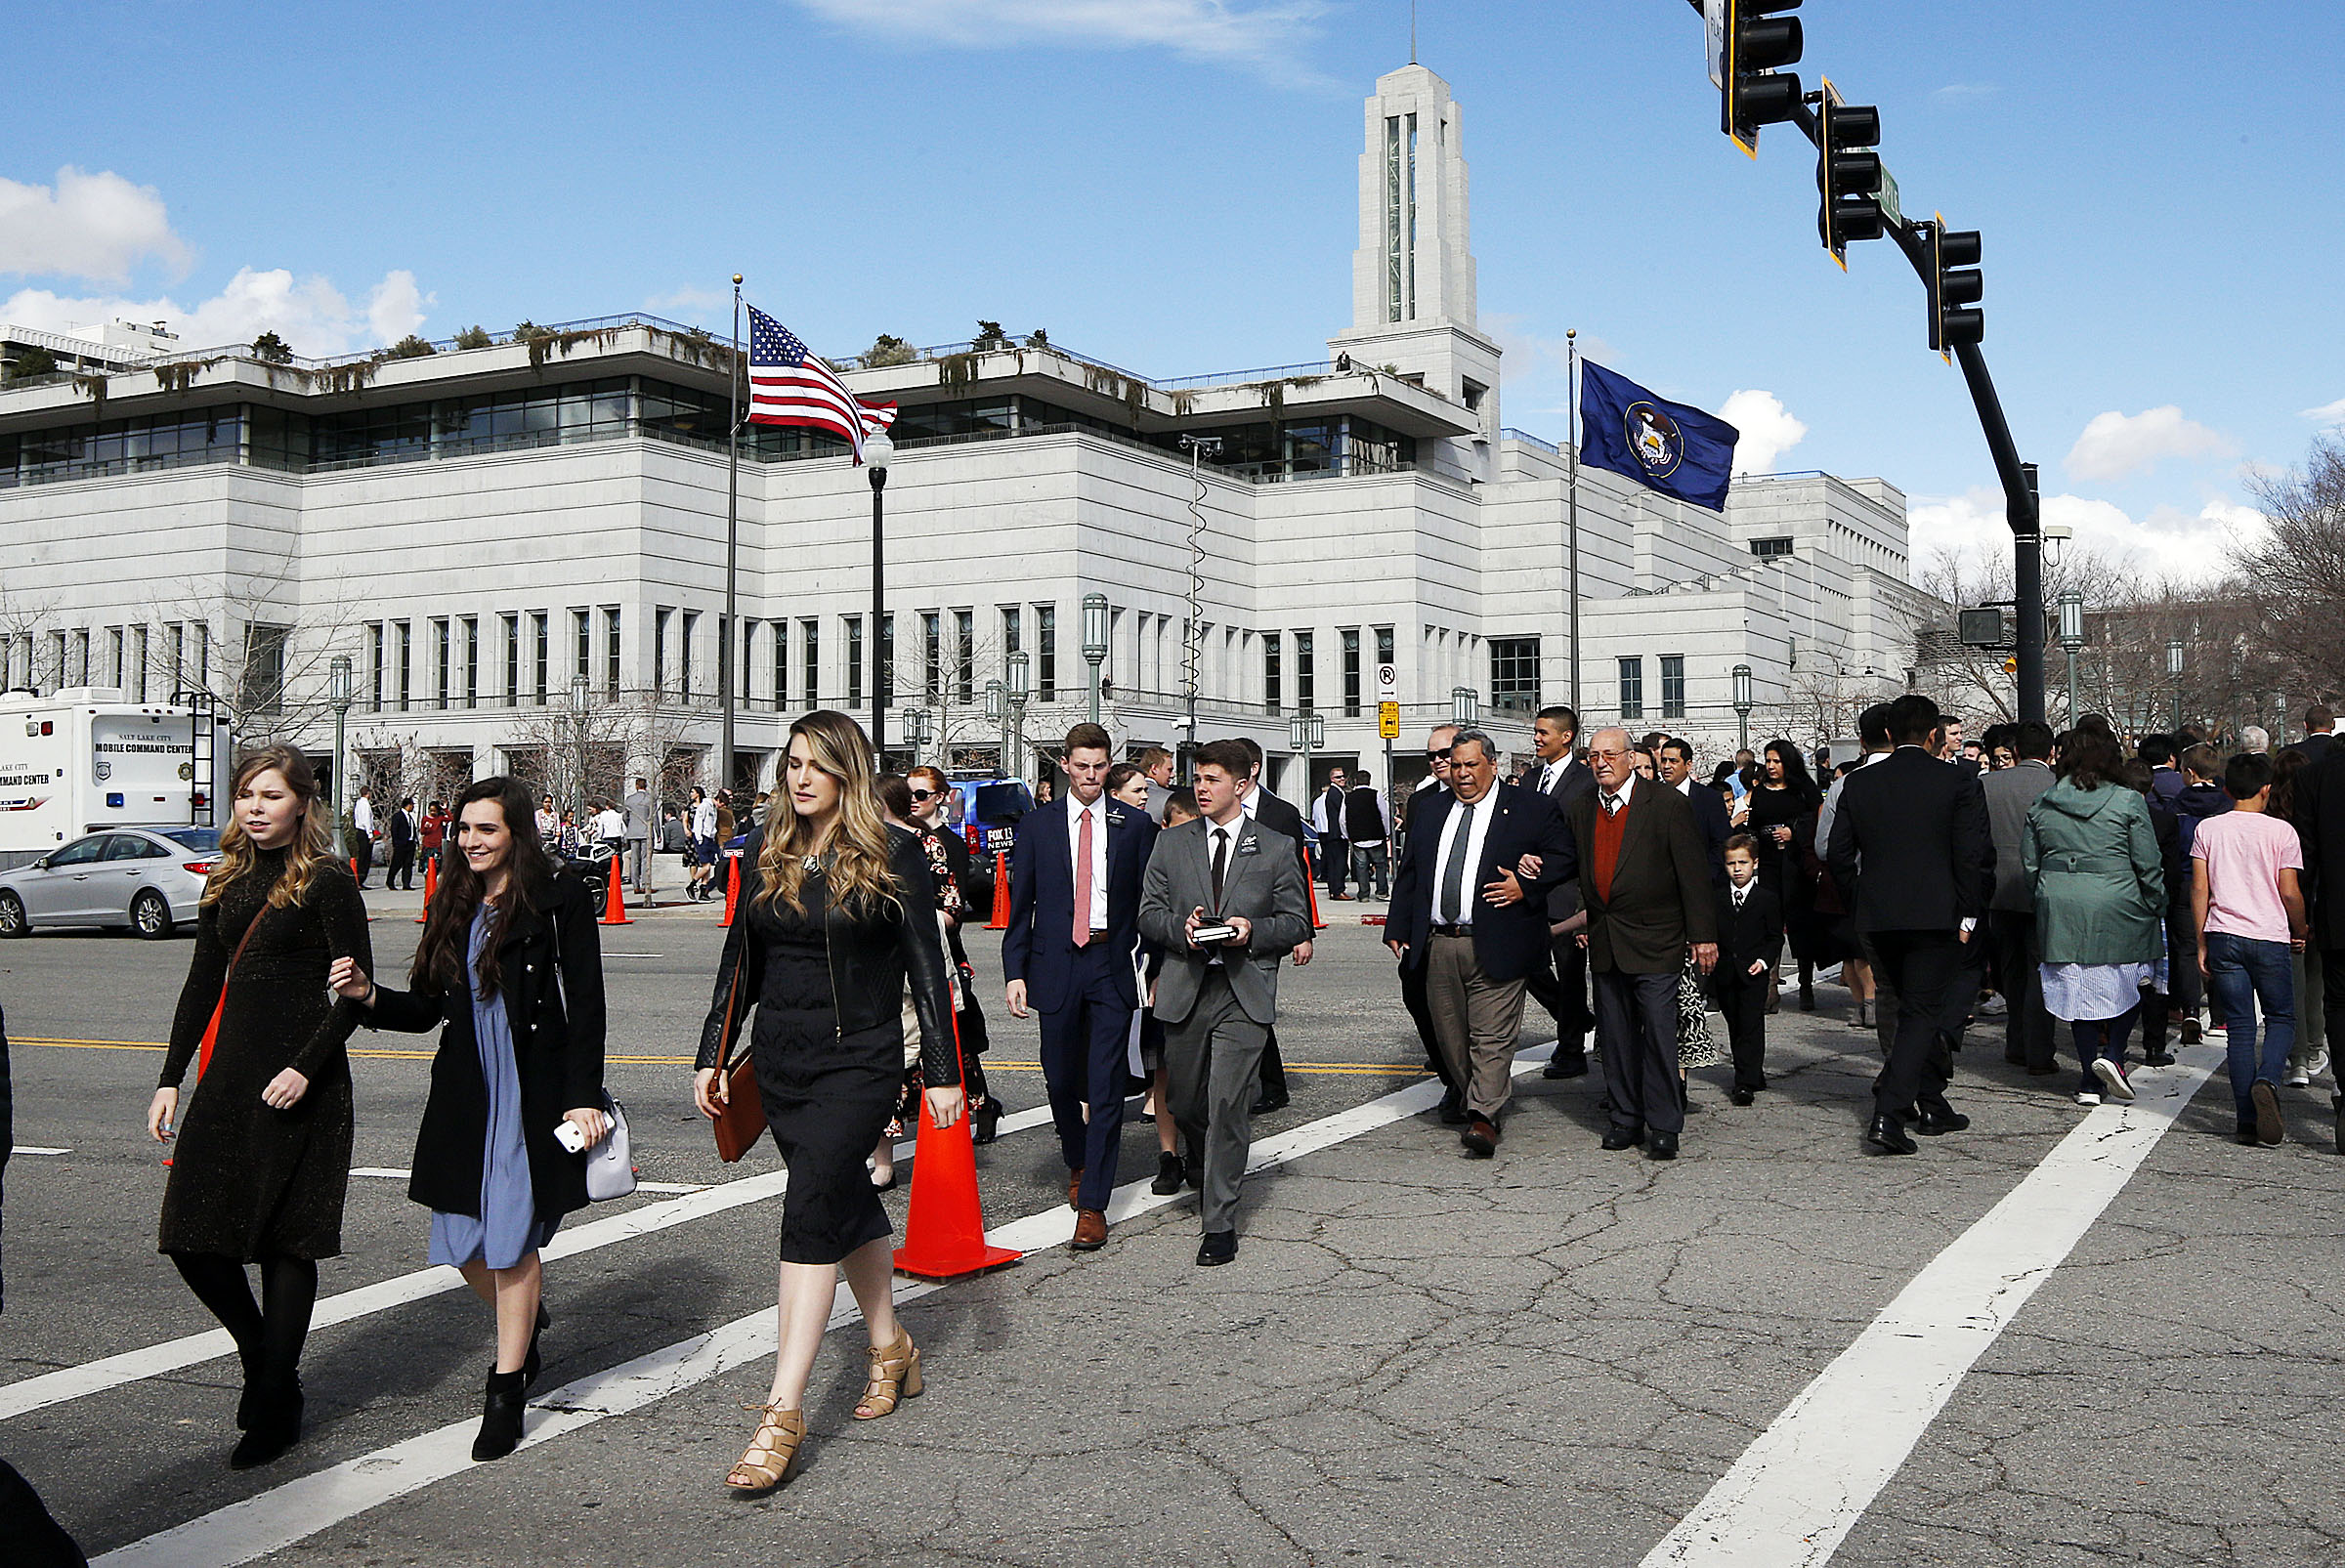 Conferencegoers walk from the Conference Center following the Saturday afternoon session of the 189th General Conference of The Church of Jesus Christ of Latter-day Saints in Salt Lake City on Saturday, April 6, 2019.